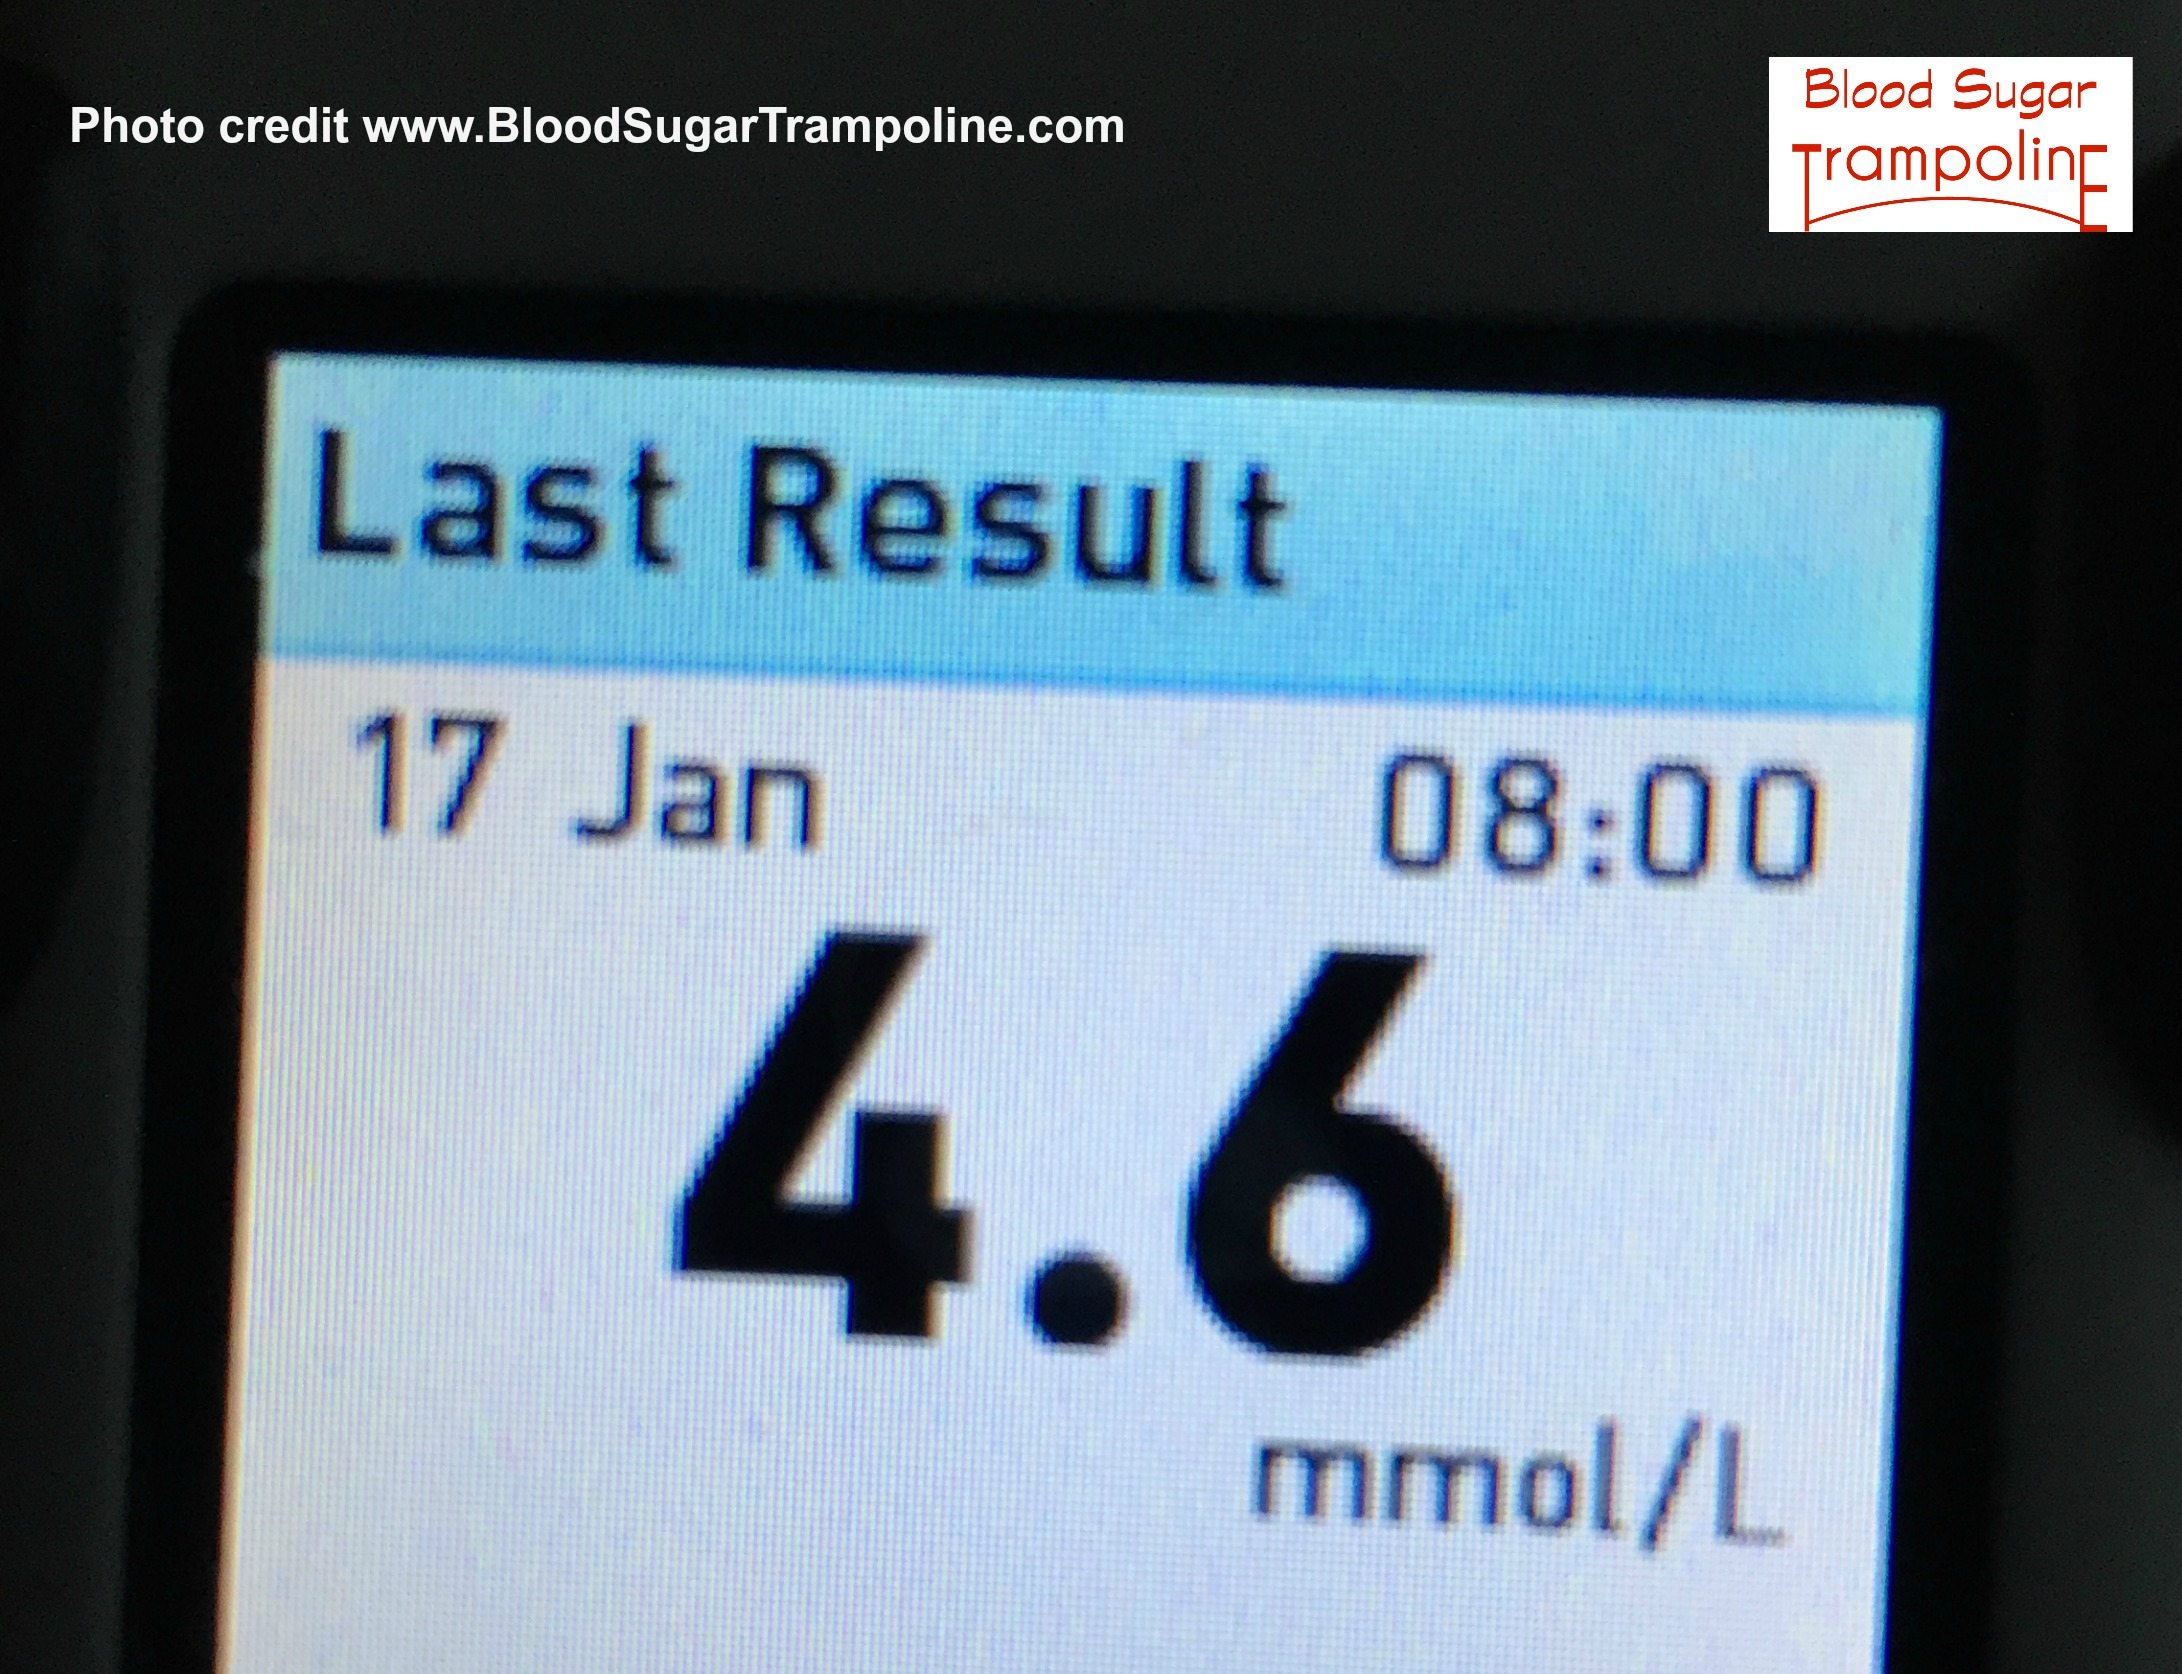 Fasting Blood Sugar No before driving!!!